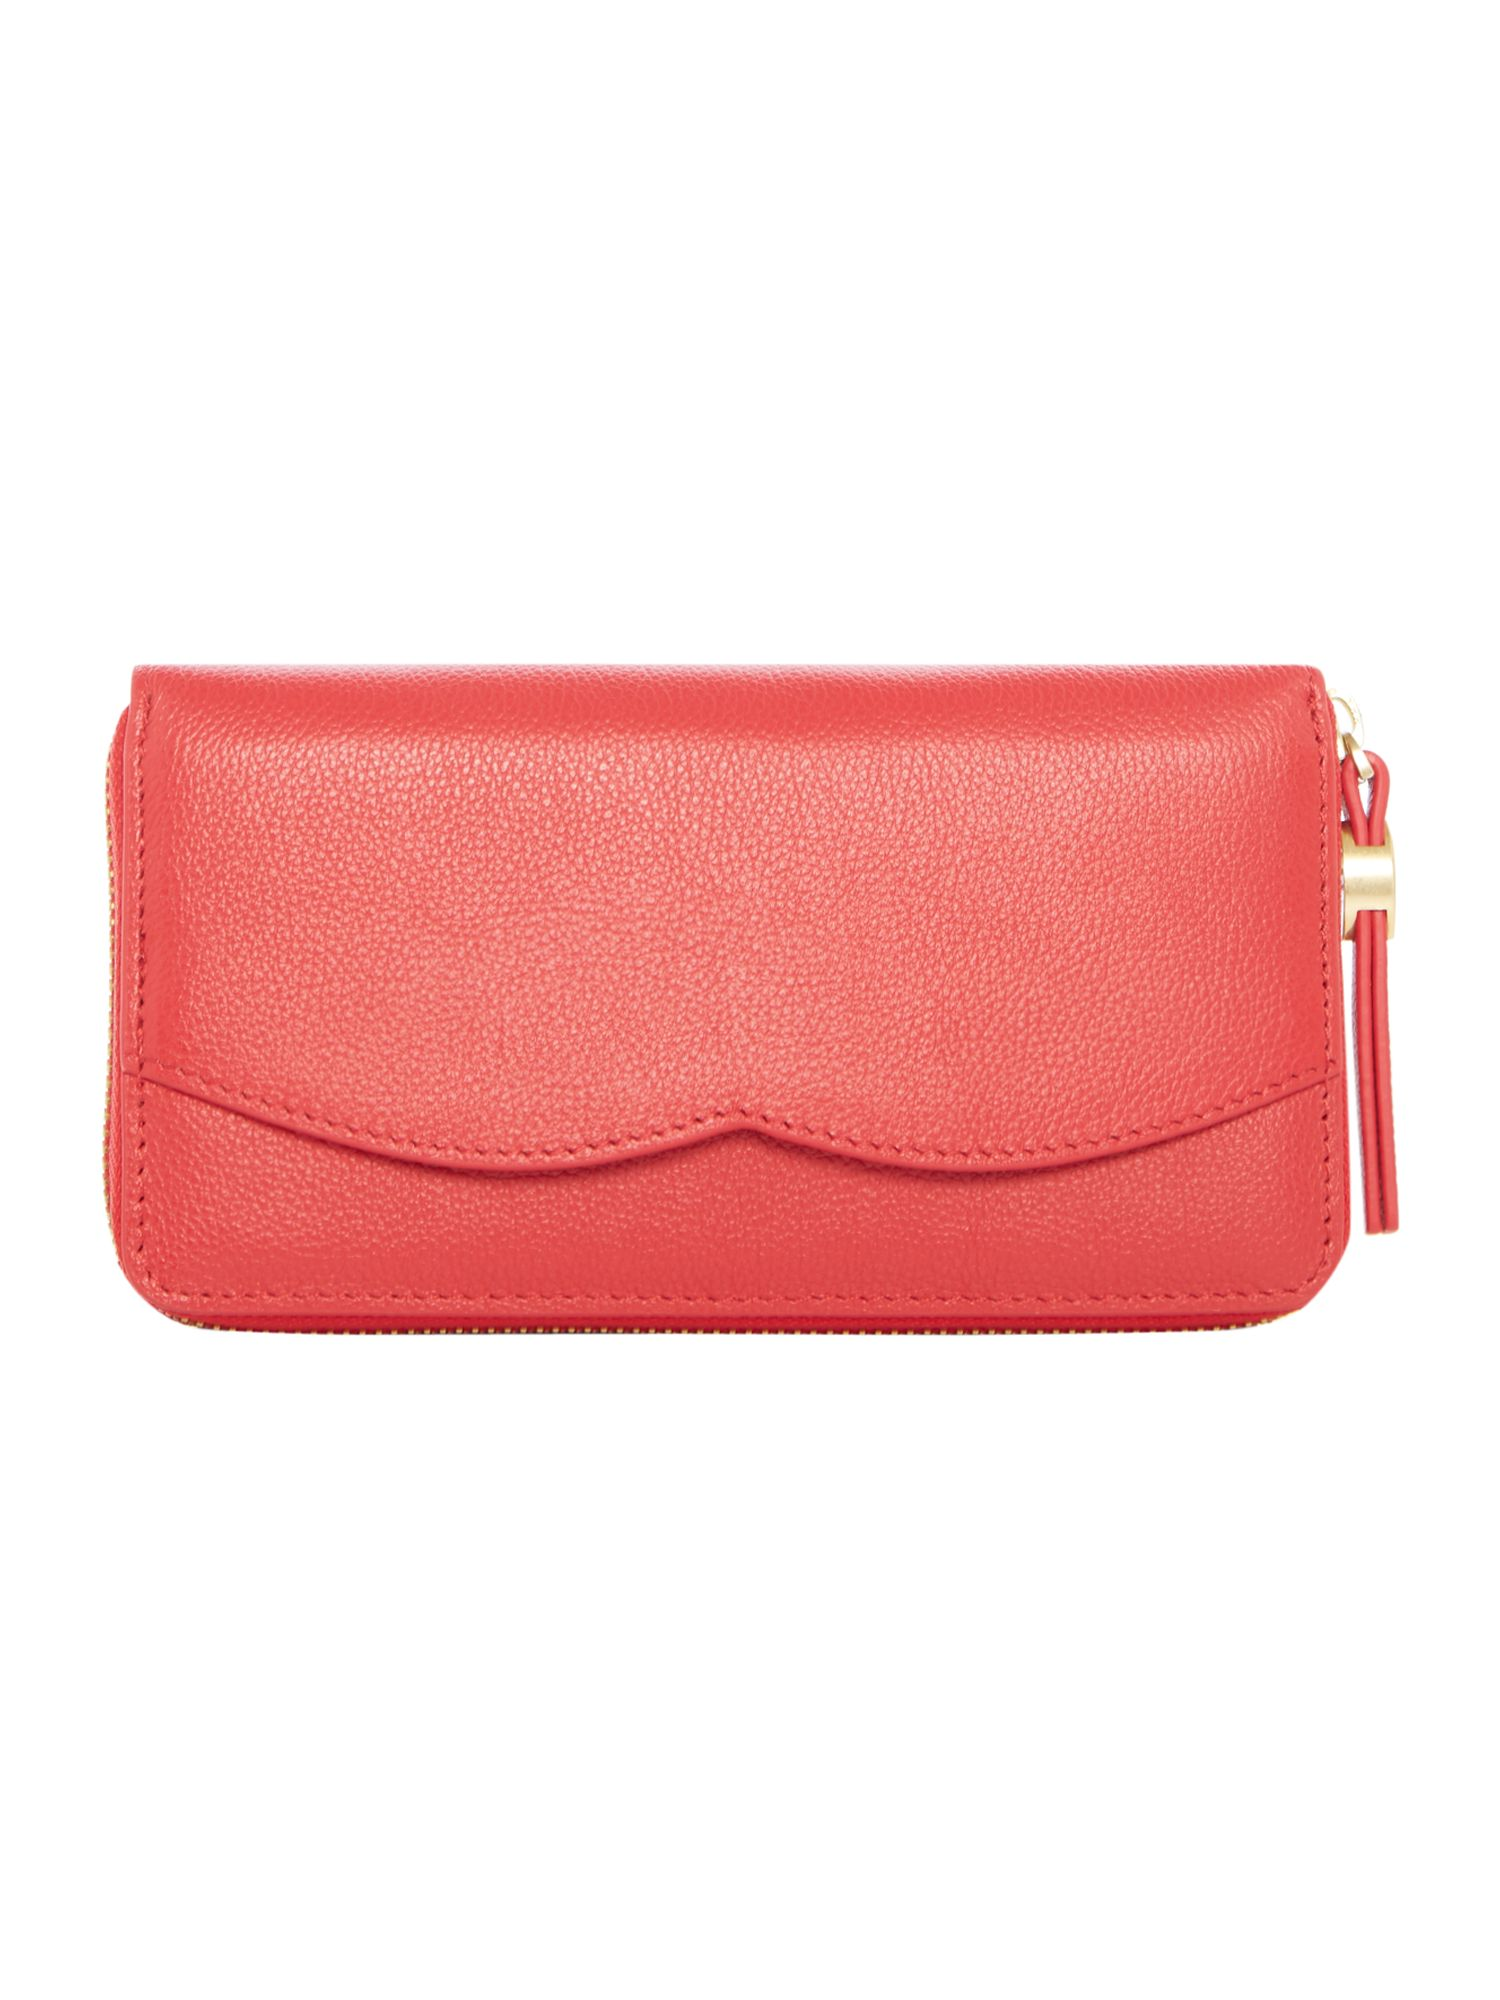 Lulu Guinness Cupids bow large zip around purse, Red